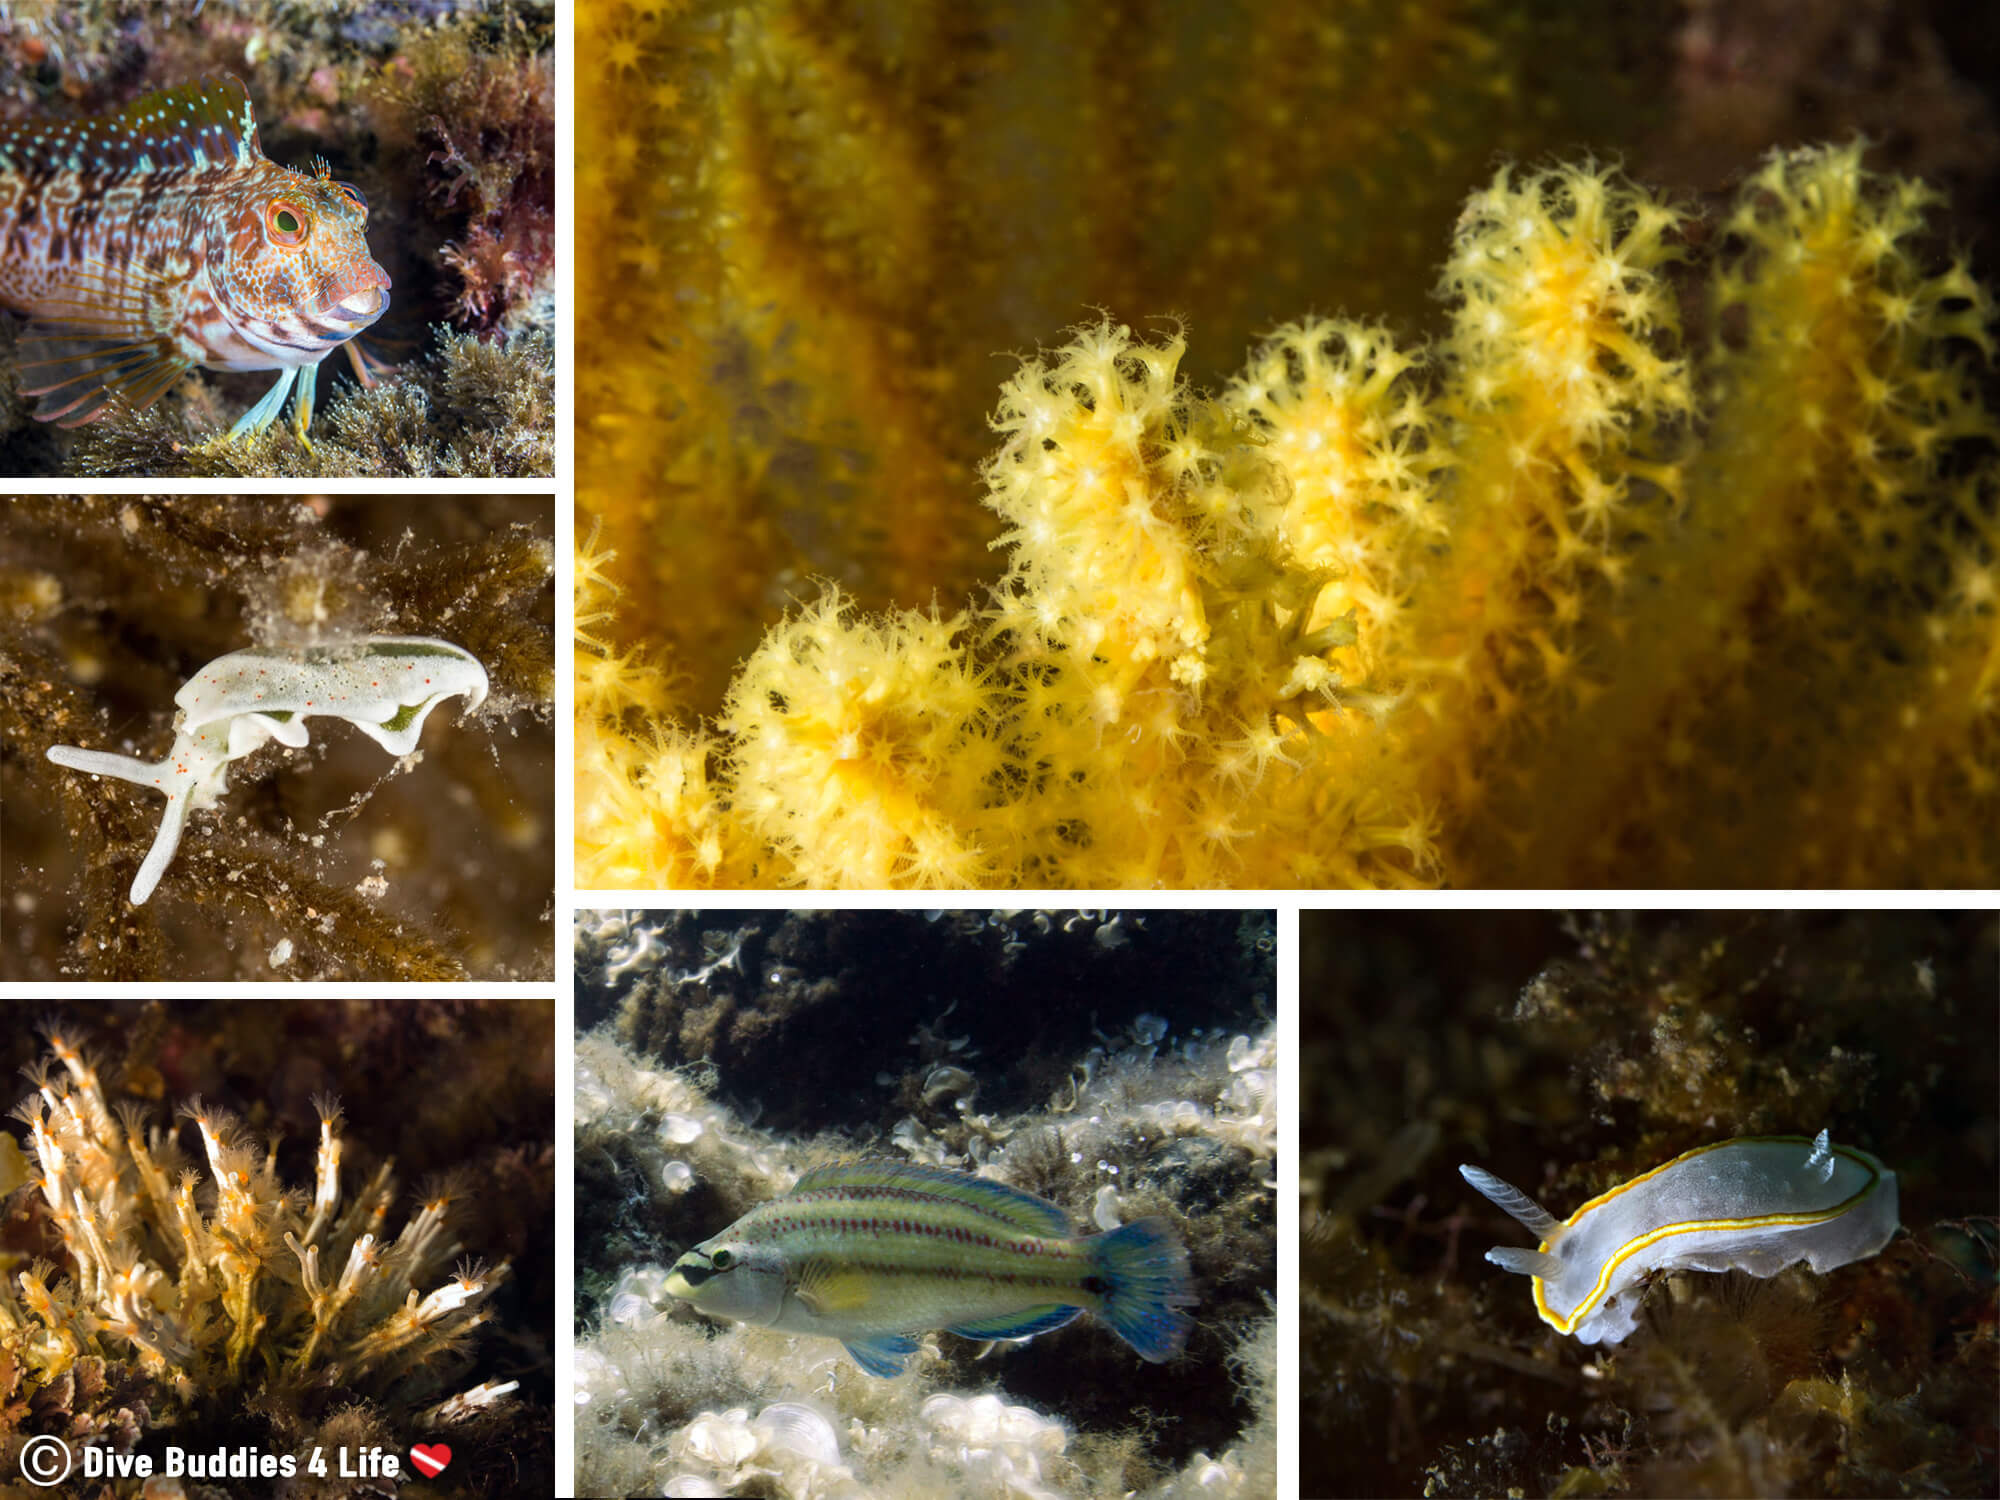 Spain's Costa Brava Underwater Marine Animals, Shore Diving Mosaic